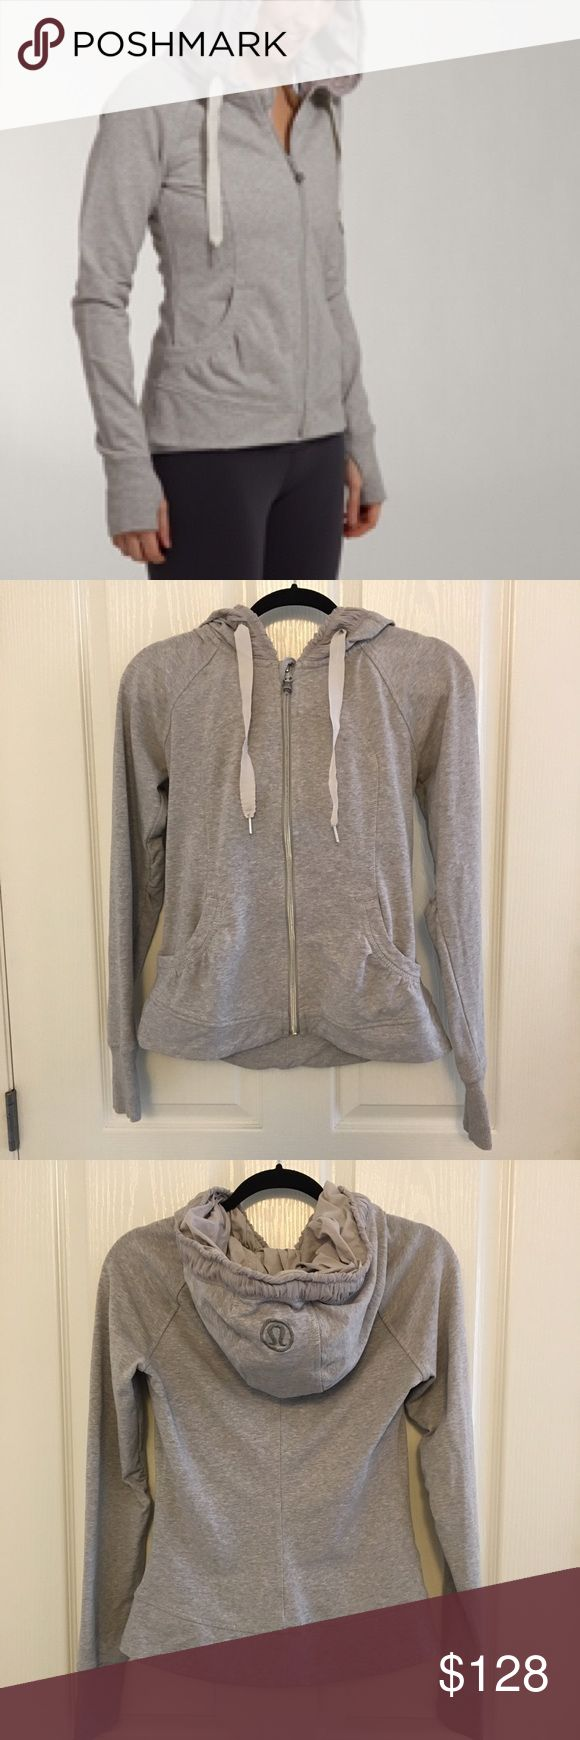 Price Drop 🔥 Lululemon hoodie jacket Lululemon movement hoodie jacket. Size 6. Excellent condition no issues to note. Stretchy French Terry material super comfortable lululemon athletica Jackets & Coats